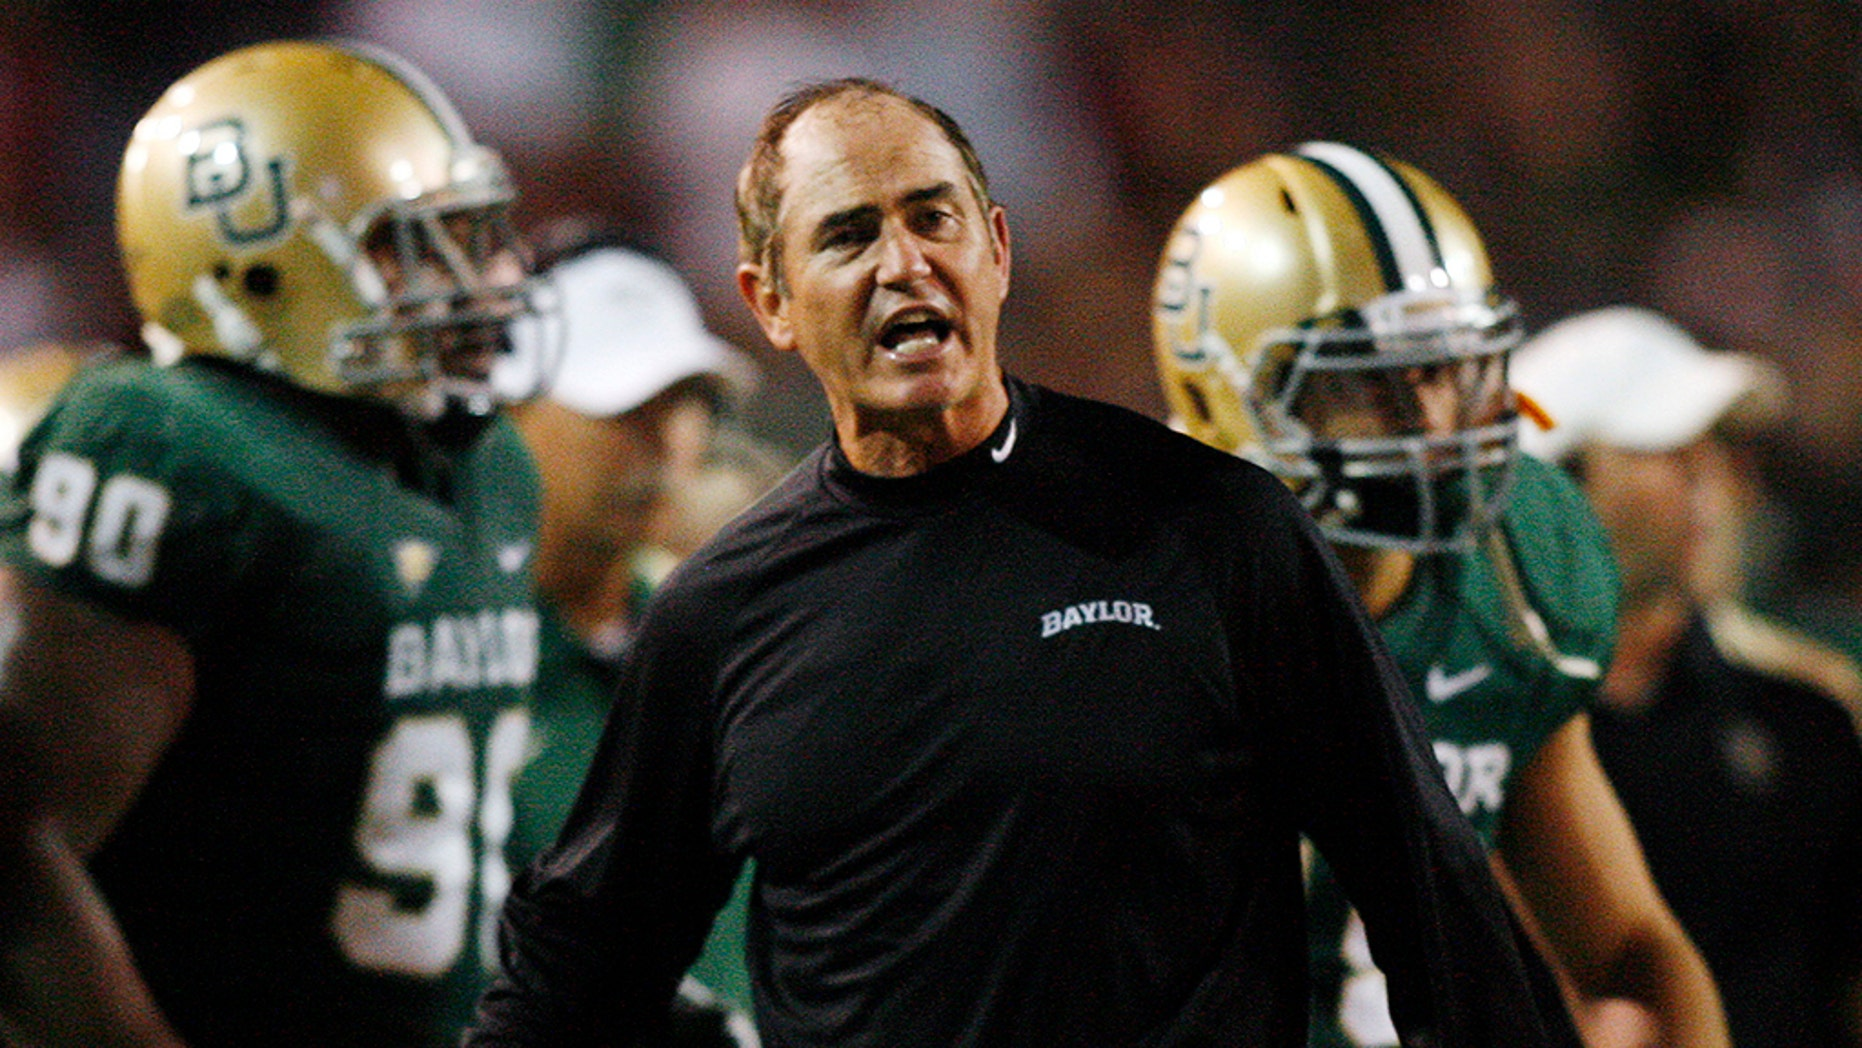 Baylor University head coach Art Briles reacts against the University of Oklahoma in the first half of their NCAA Big 12 football game at Floyd Casey Stadium in Waco, Texas, United States on November 19, 2011. (REUTERS/Mike Stone/File Photo)